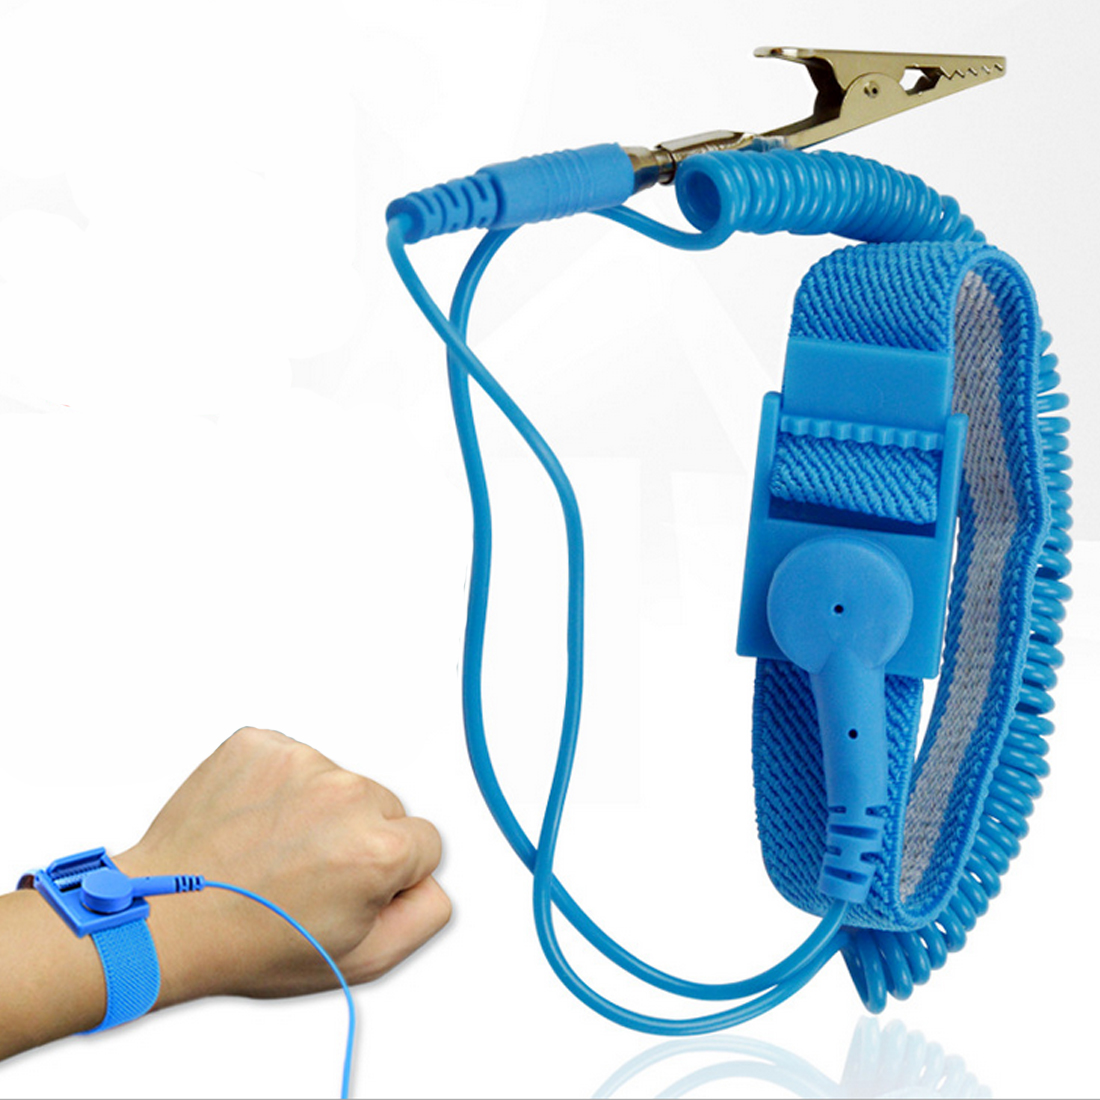 Anti Static Wrist Strap Elastic Band With Clip For Sensitive Electronics Repair Work Tools